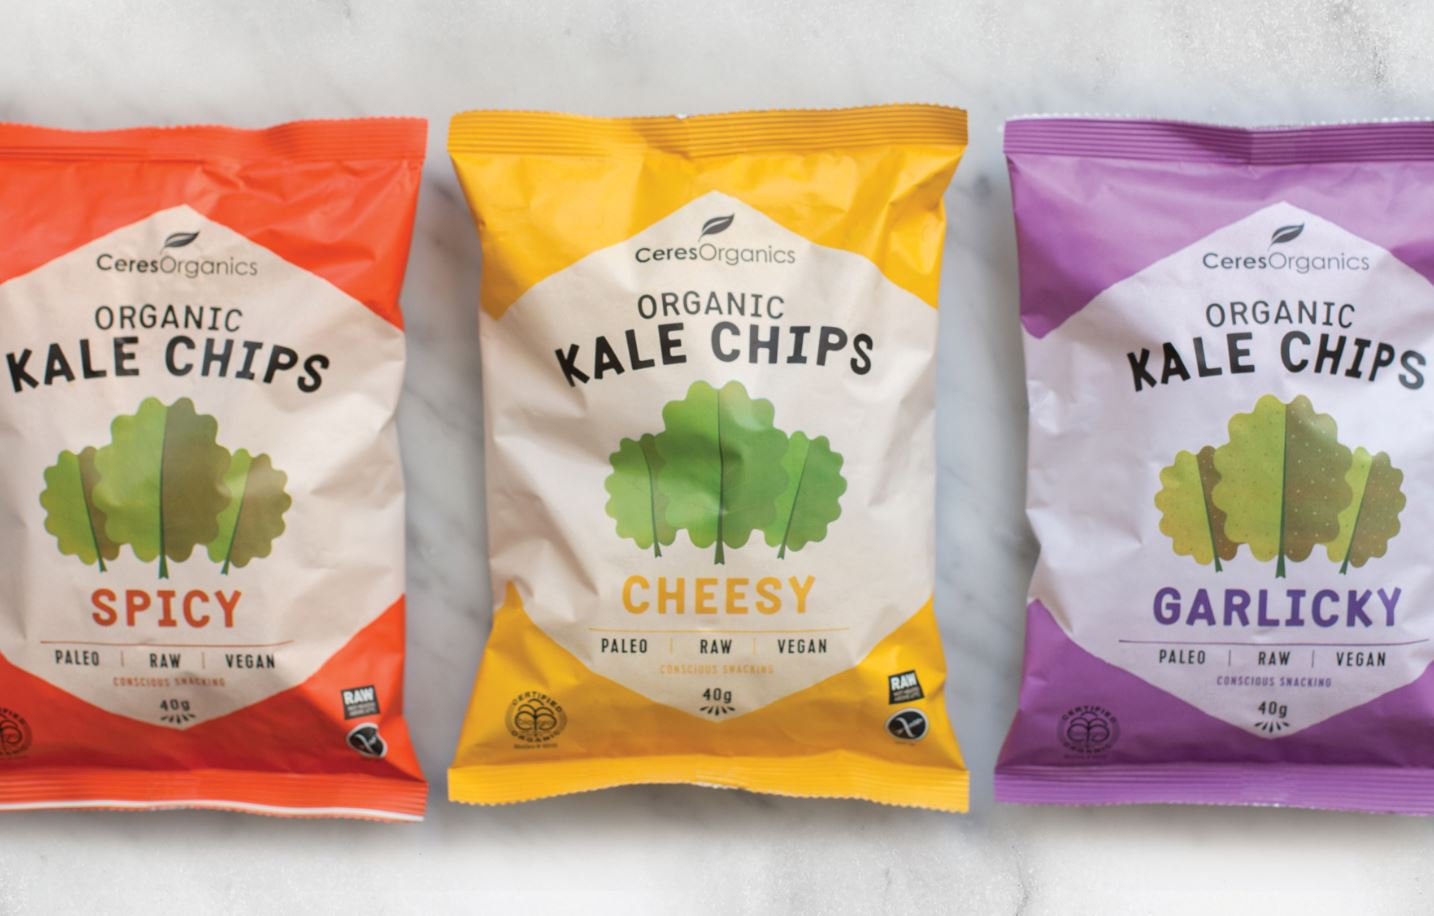 Win a Summer's Worth of Ceres Organics Kale Chips prize pack (AKL)